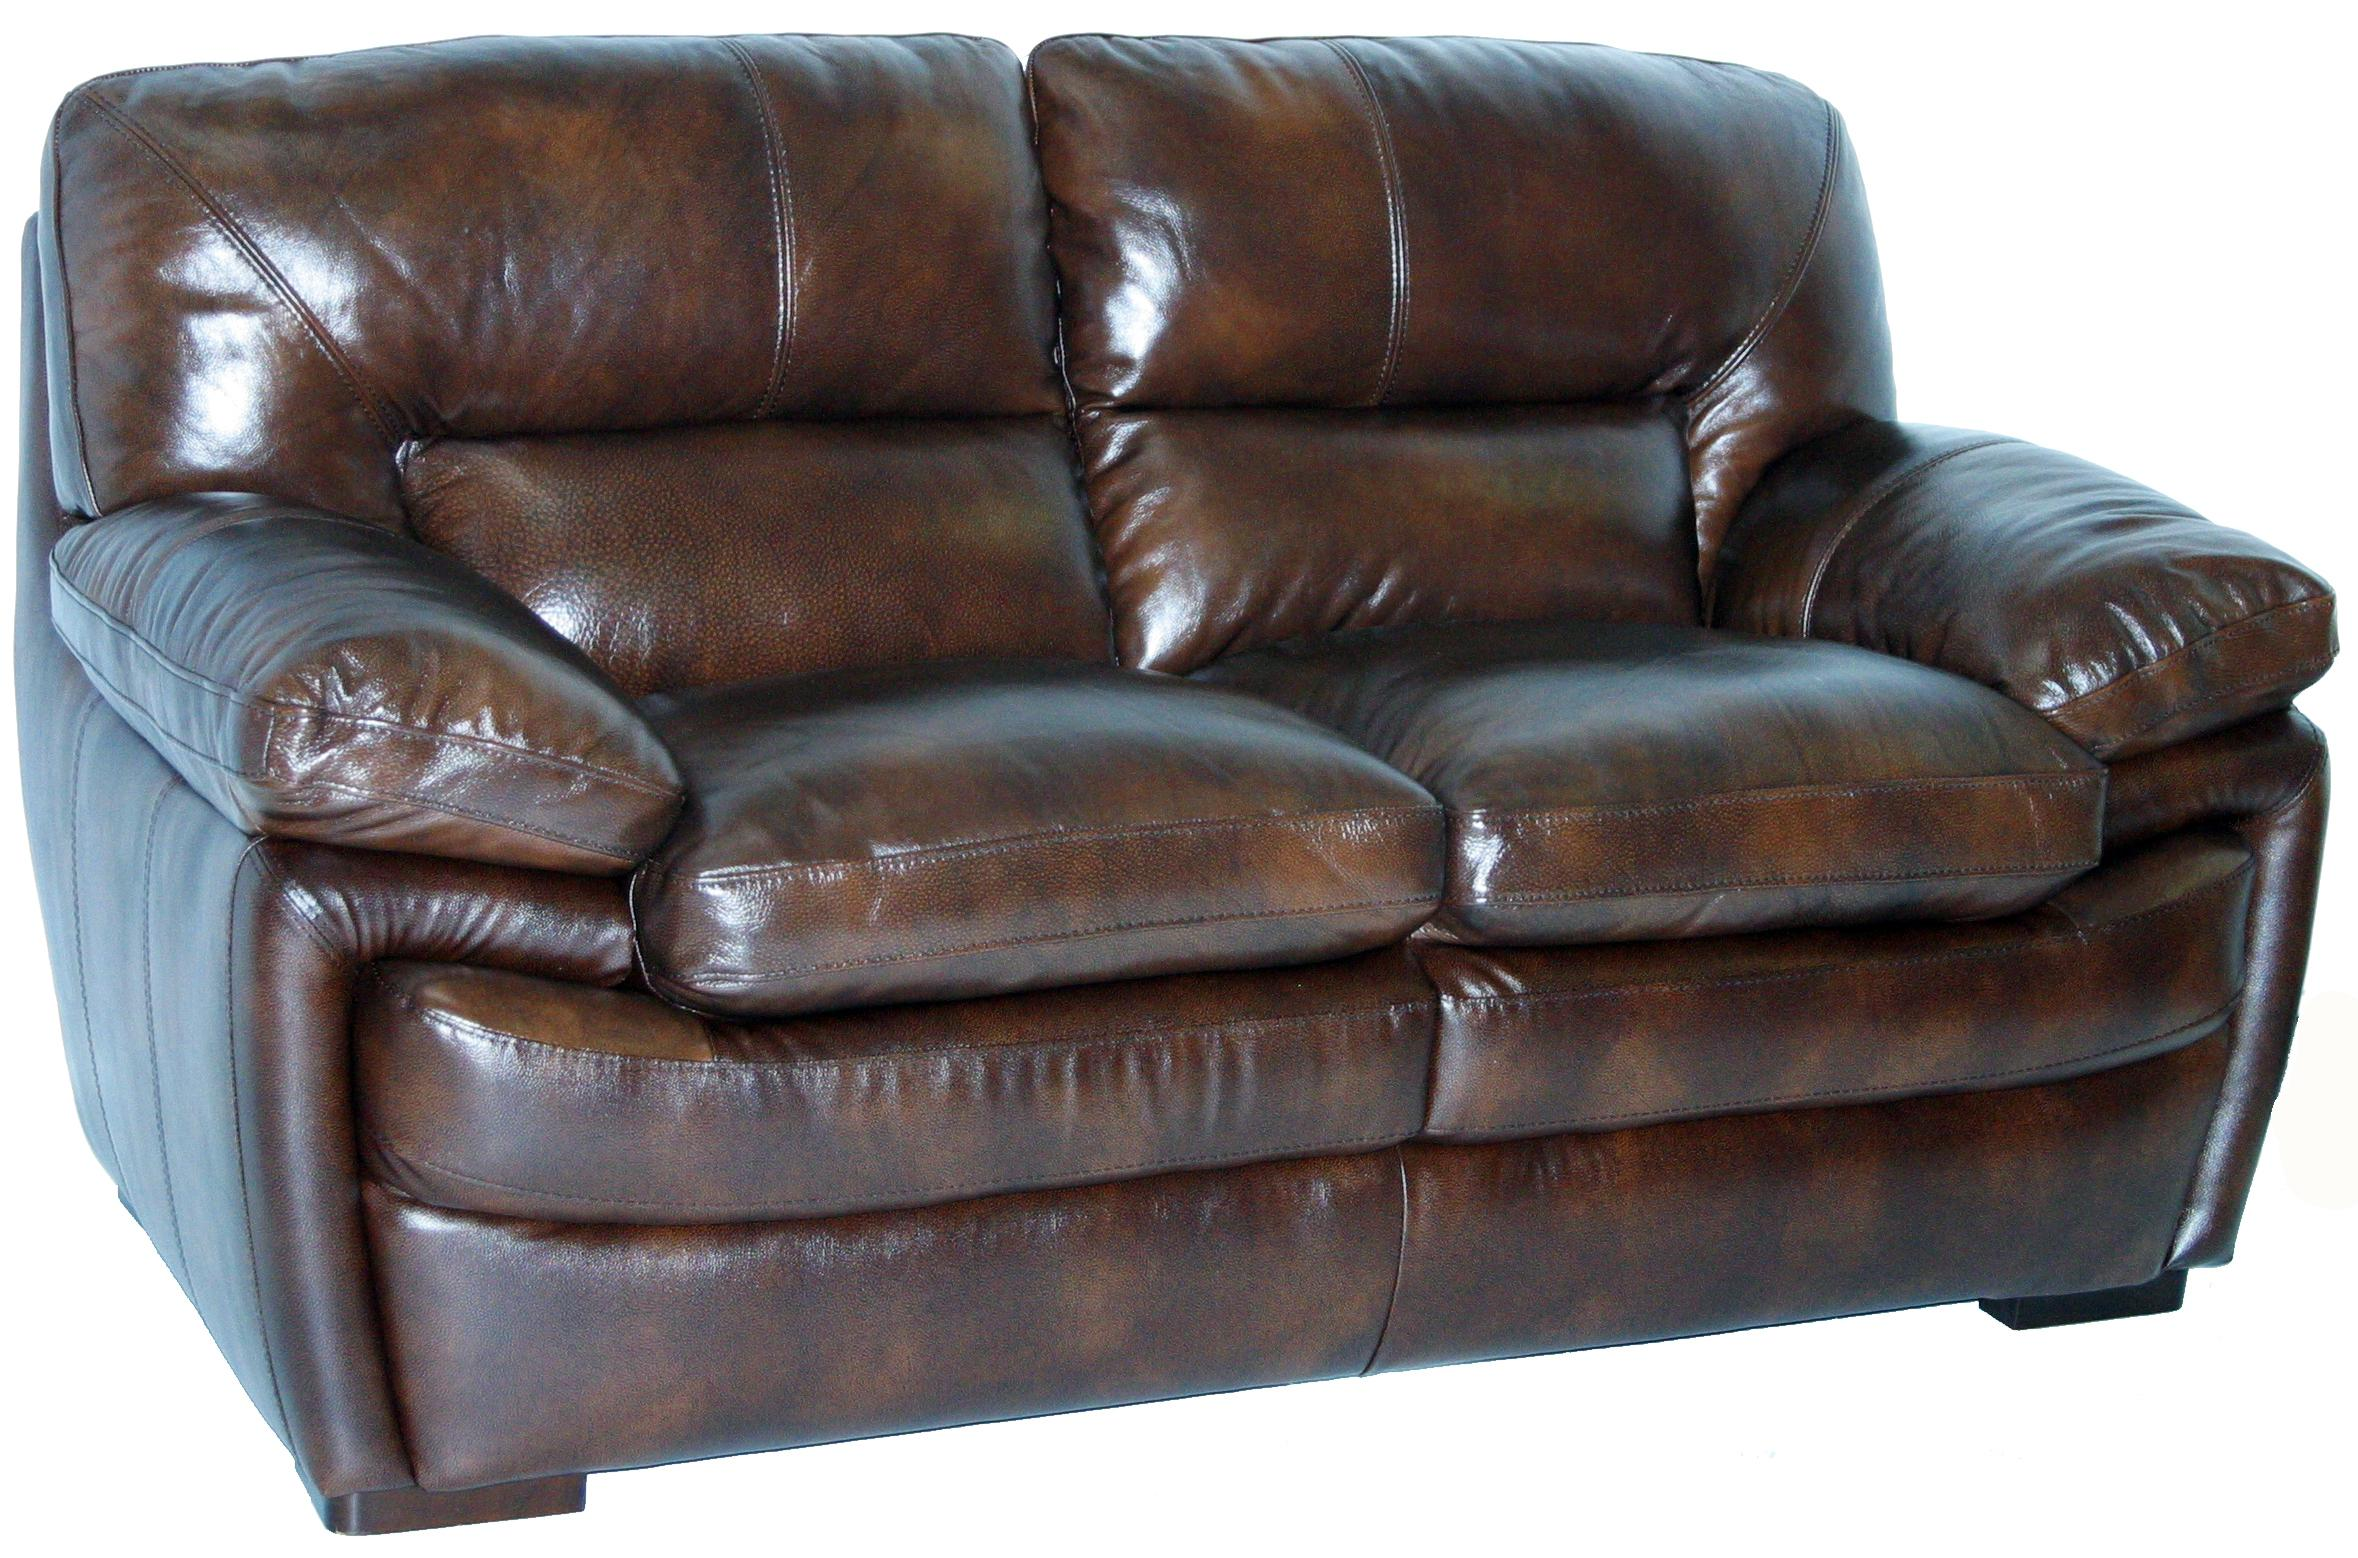 3592 Loveseat by Violino at Furniture Superstore - Rochester, MN